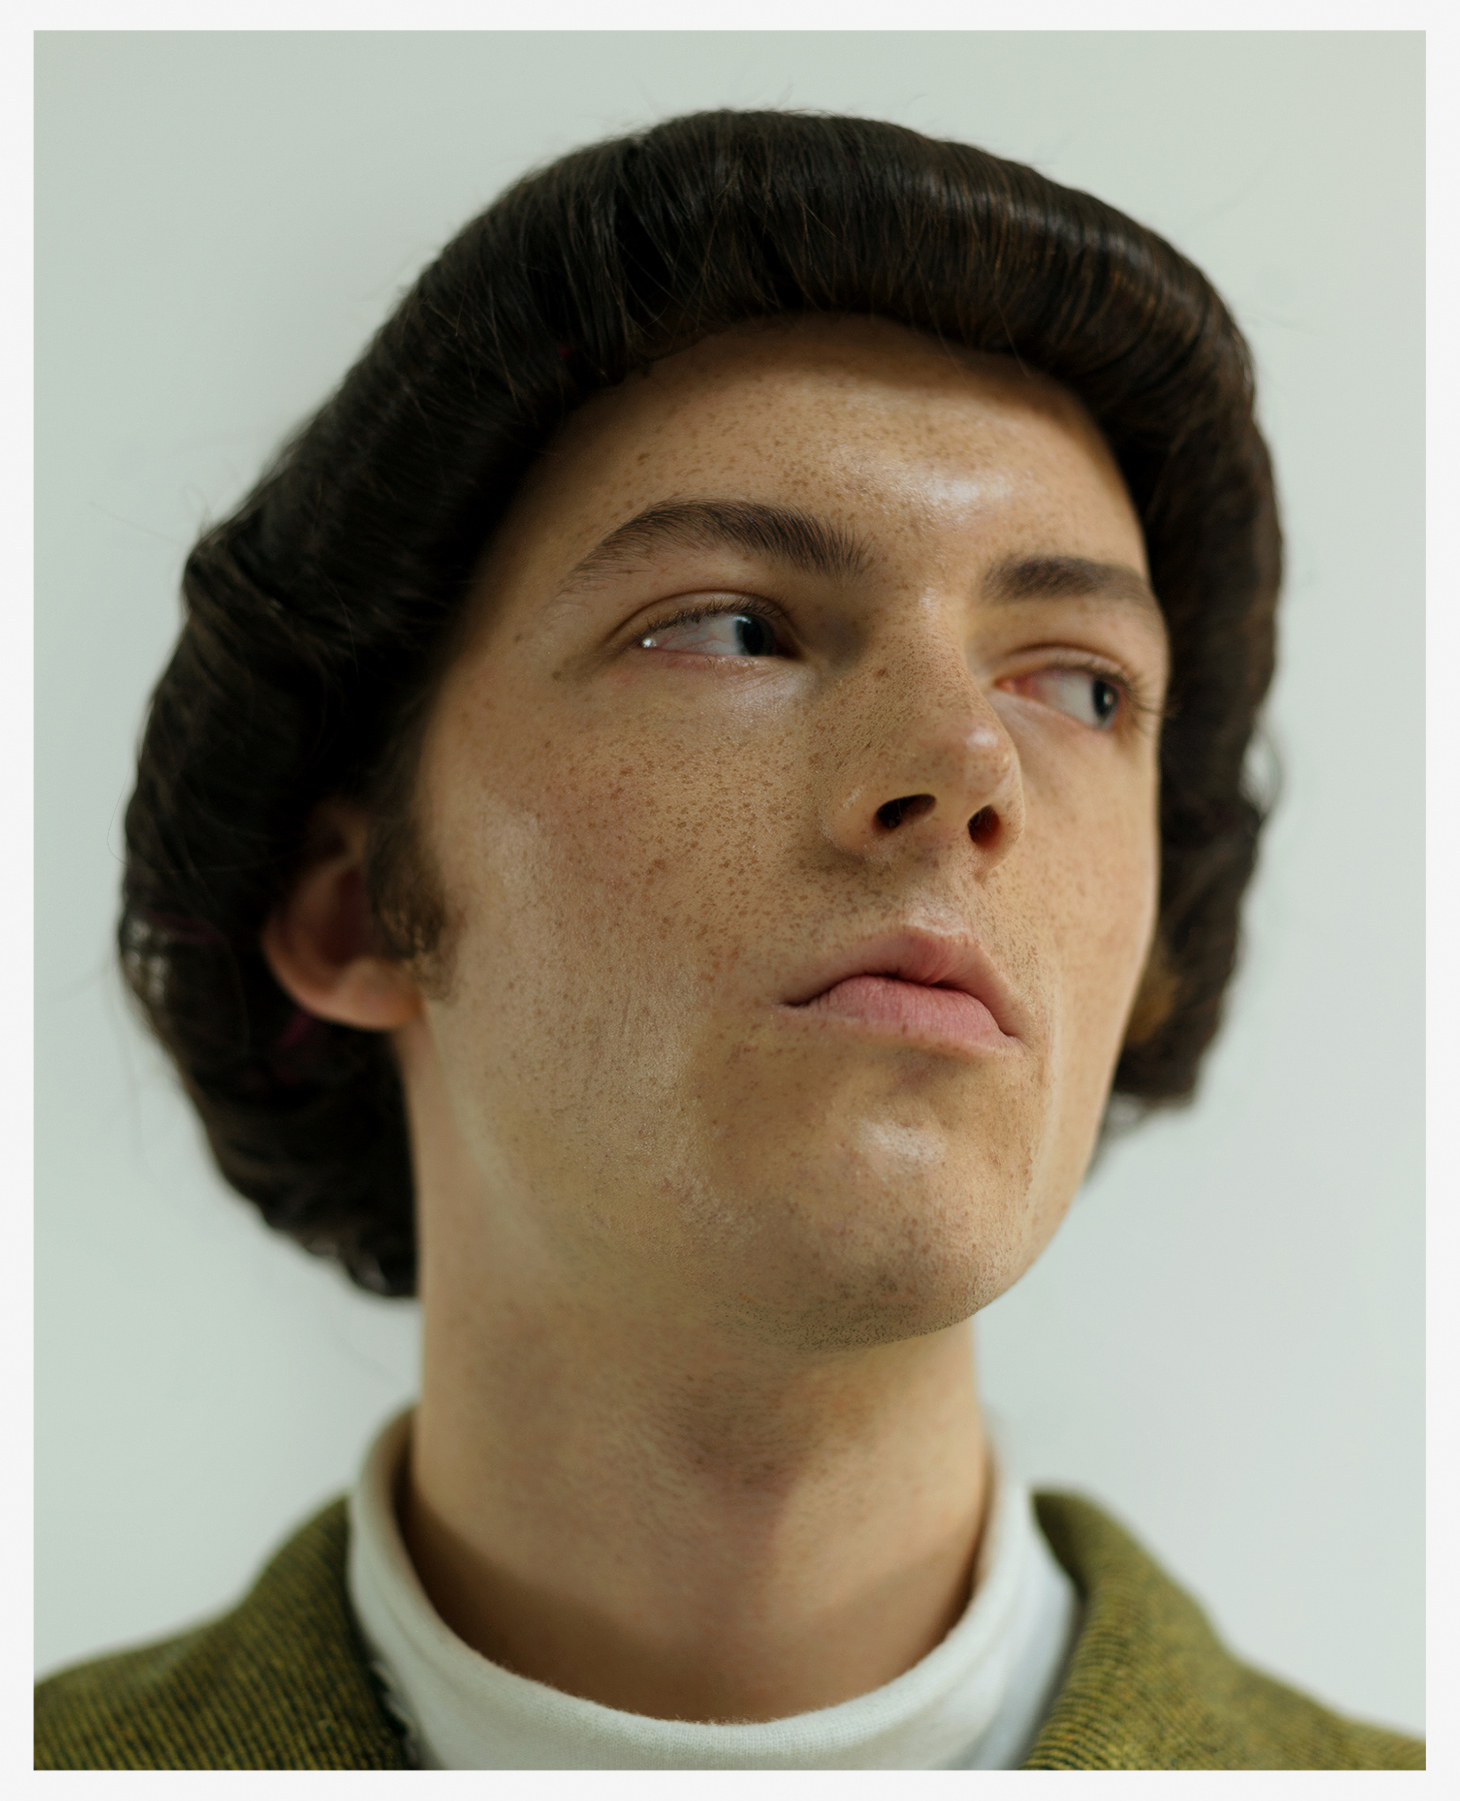 nina raasch editorial short hair 70s vibe male model